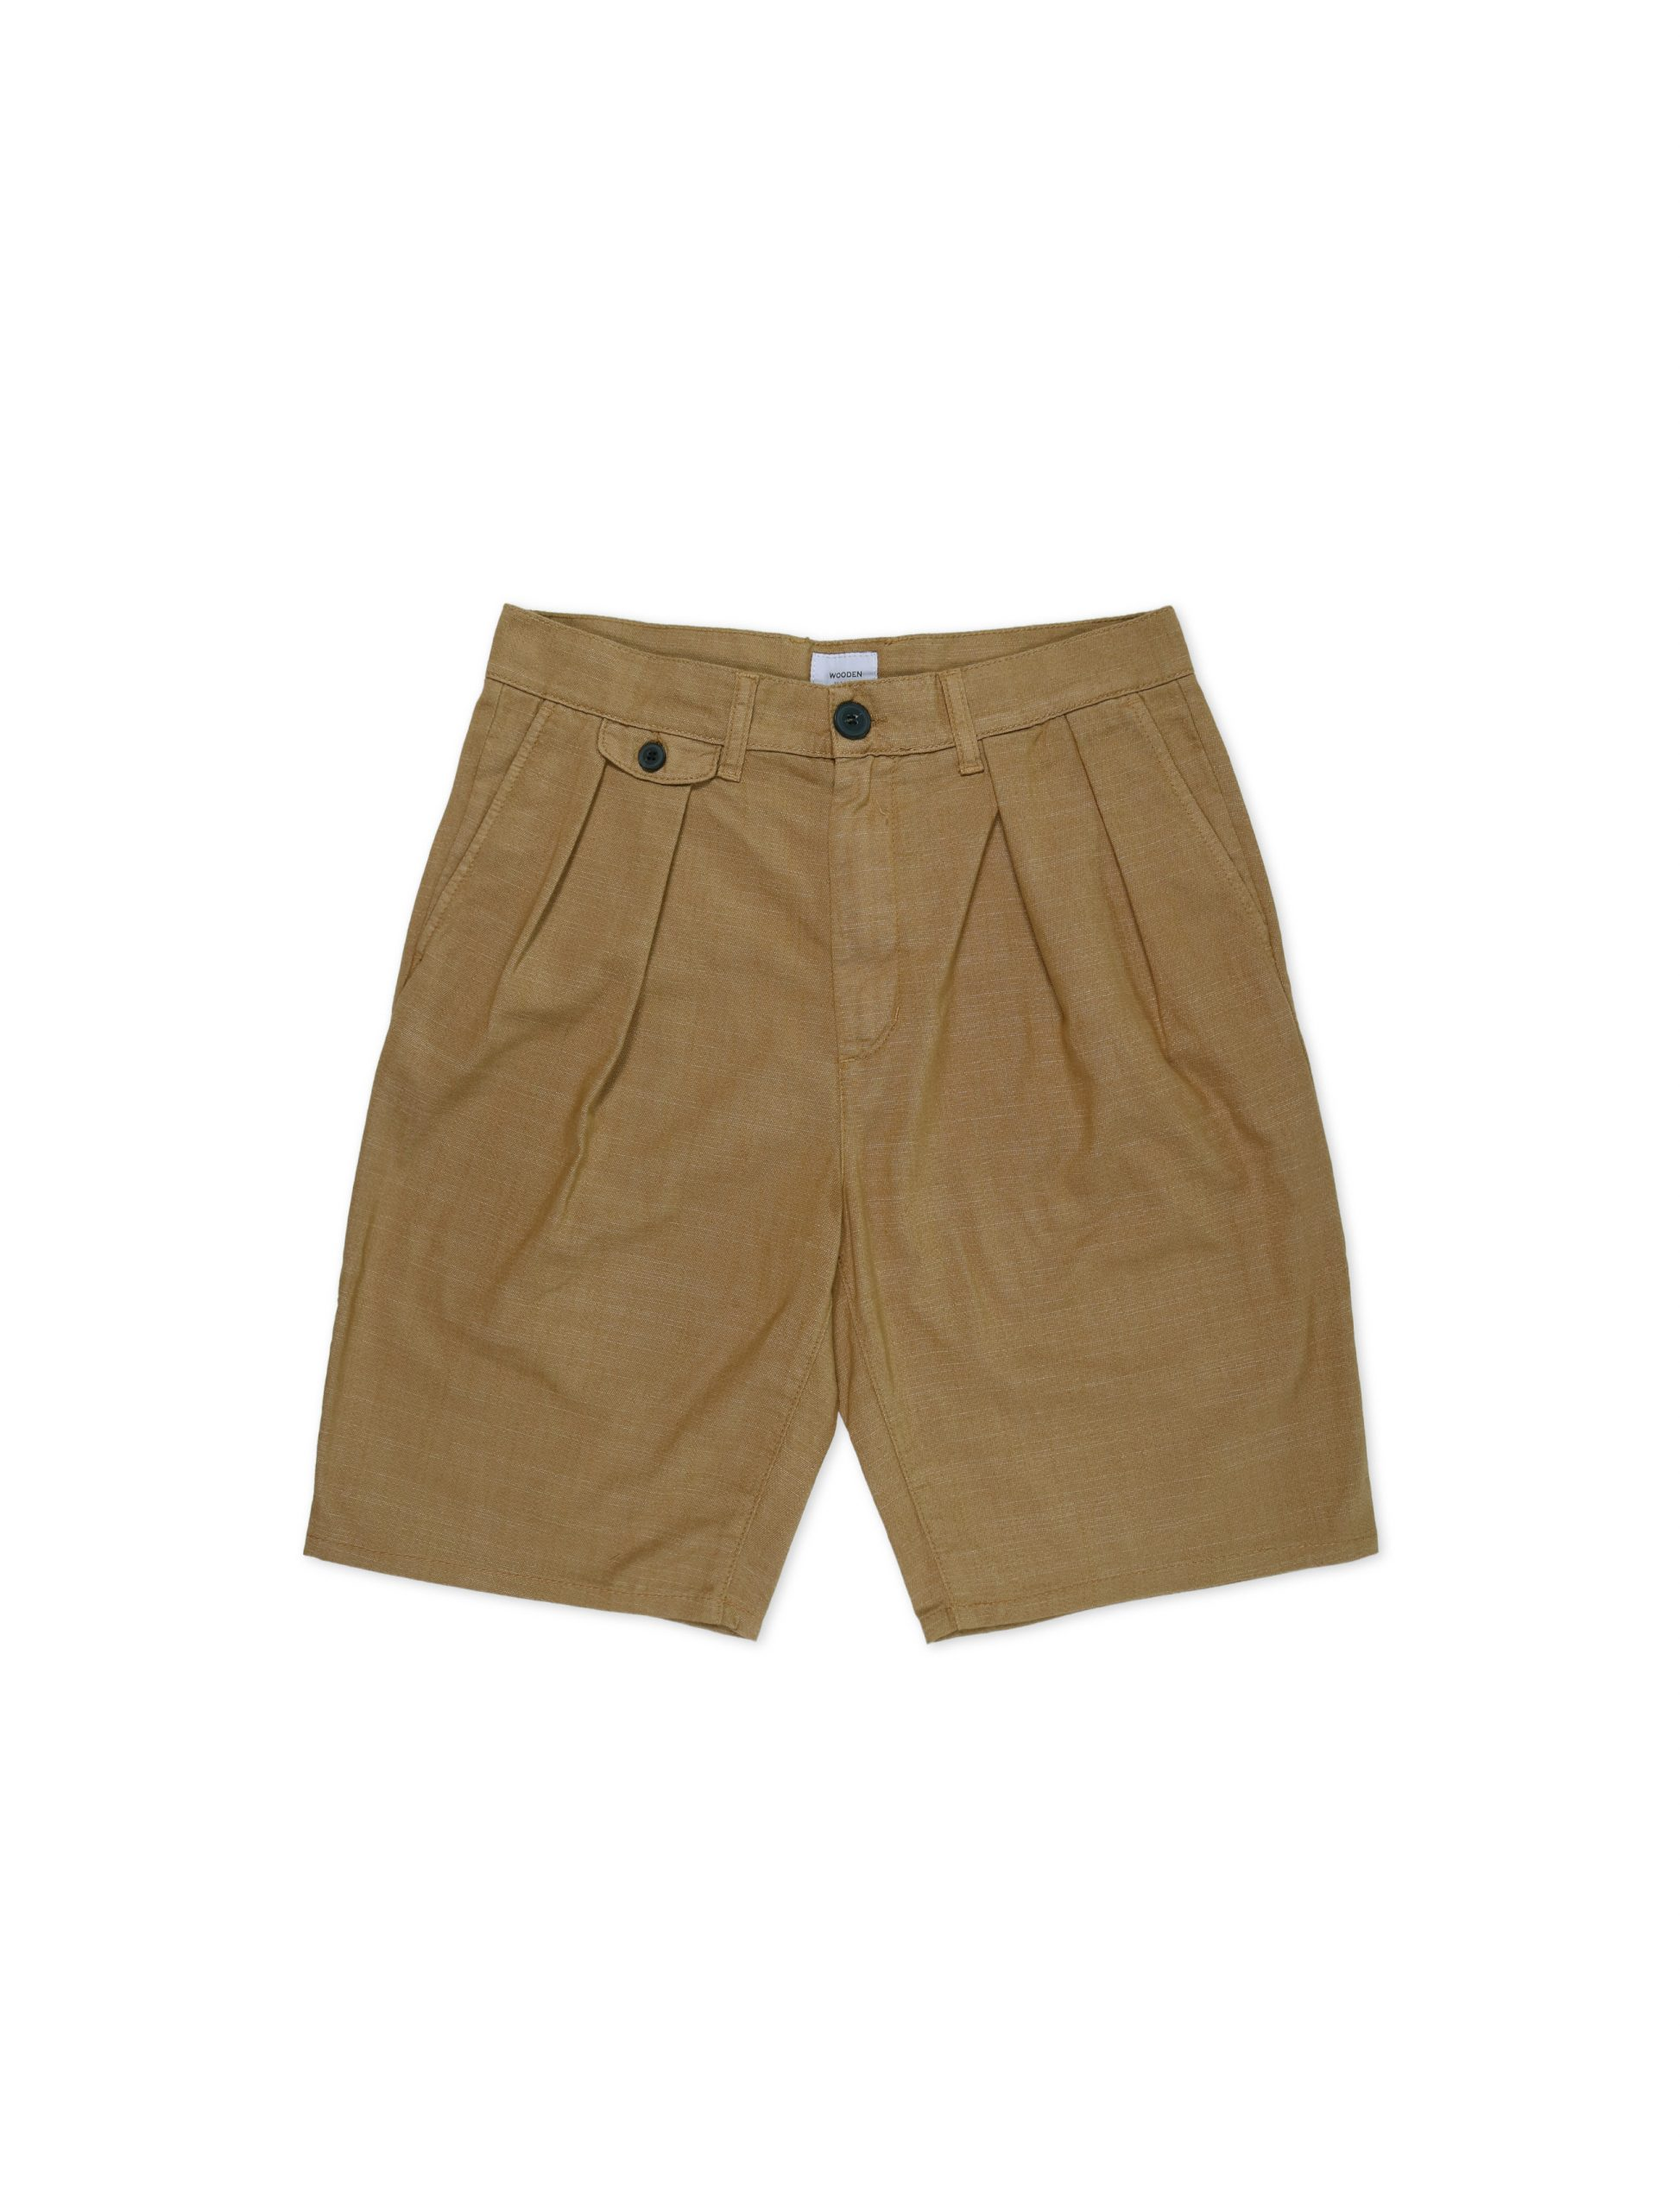 Paris Short Camel | Wooden Store